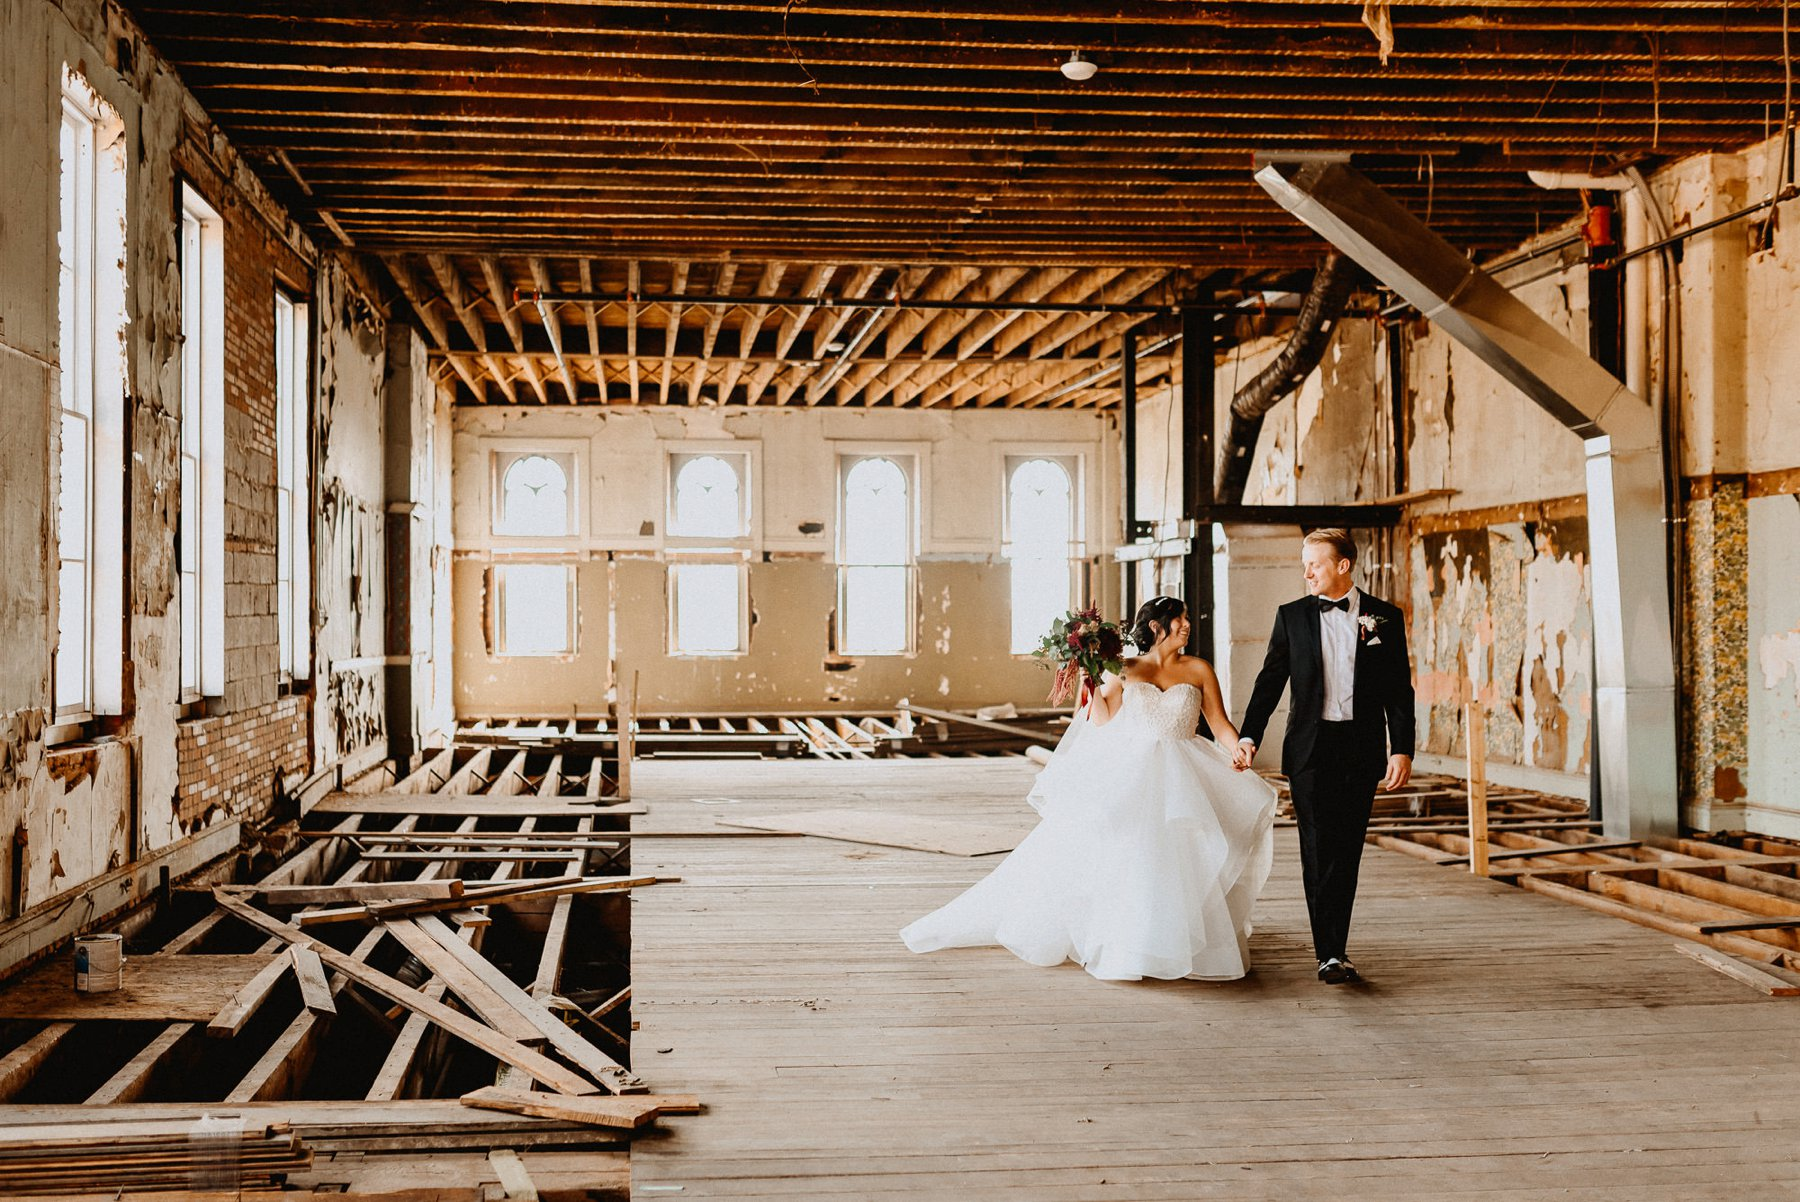 excelsior_lancaster_wedding_photographeer-028.jpg